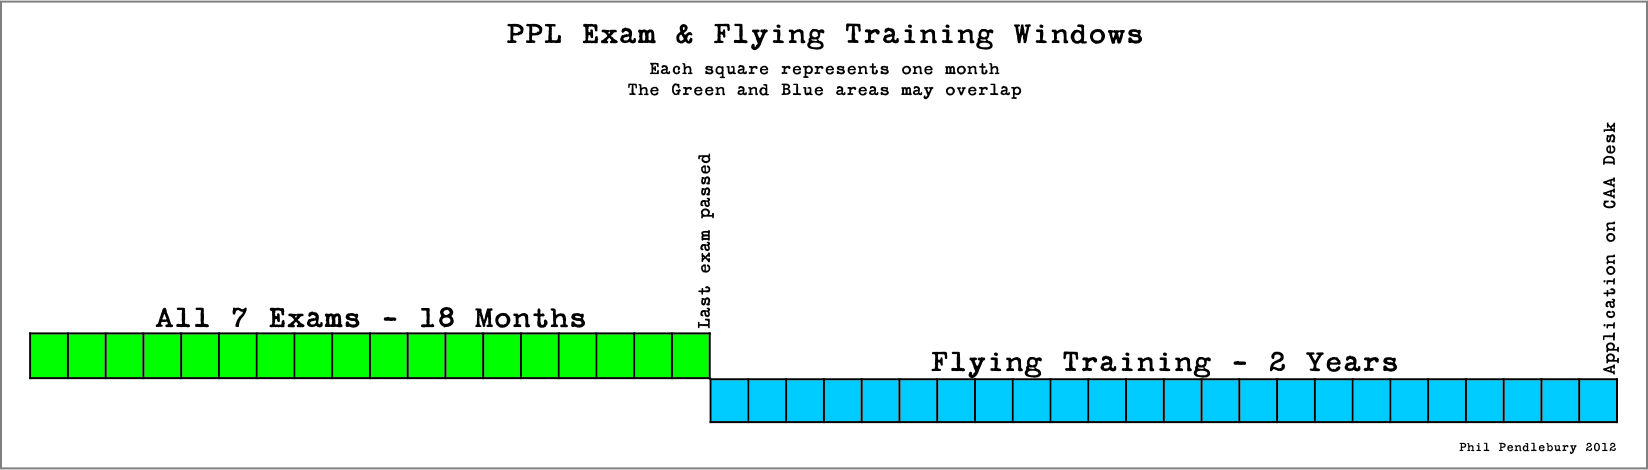 PPL Training & Exam Windows